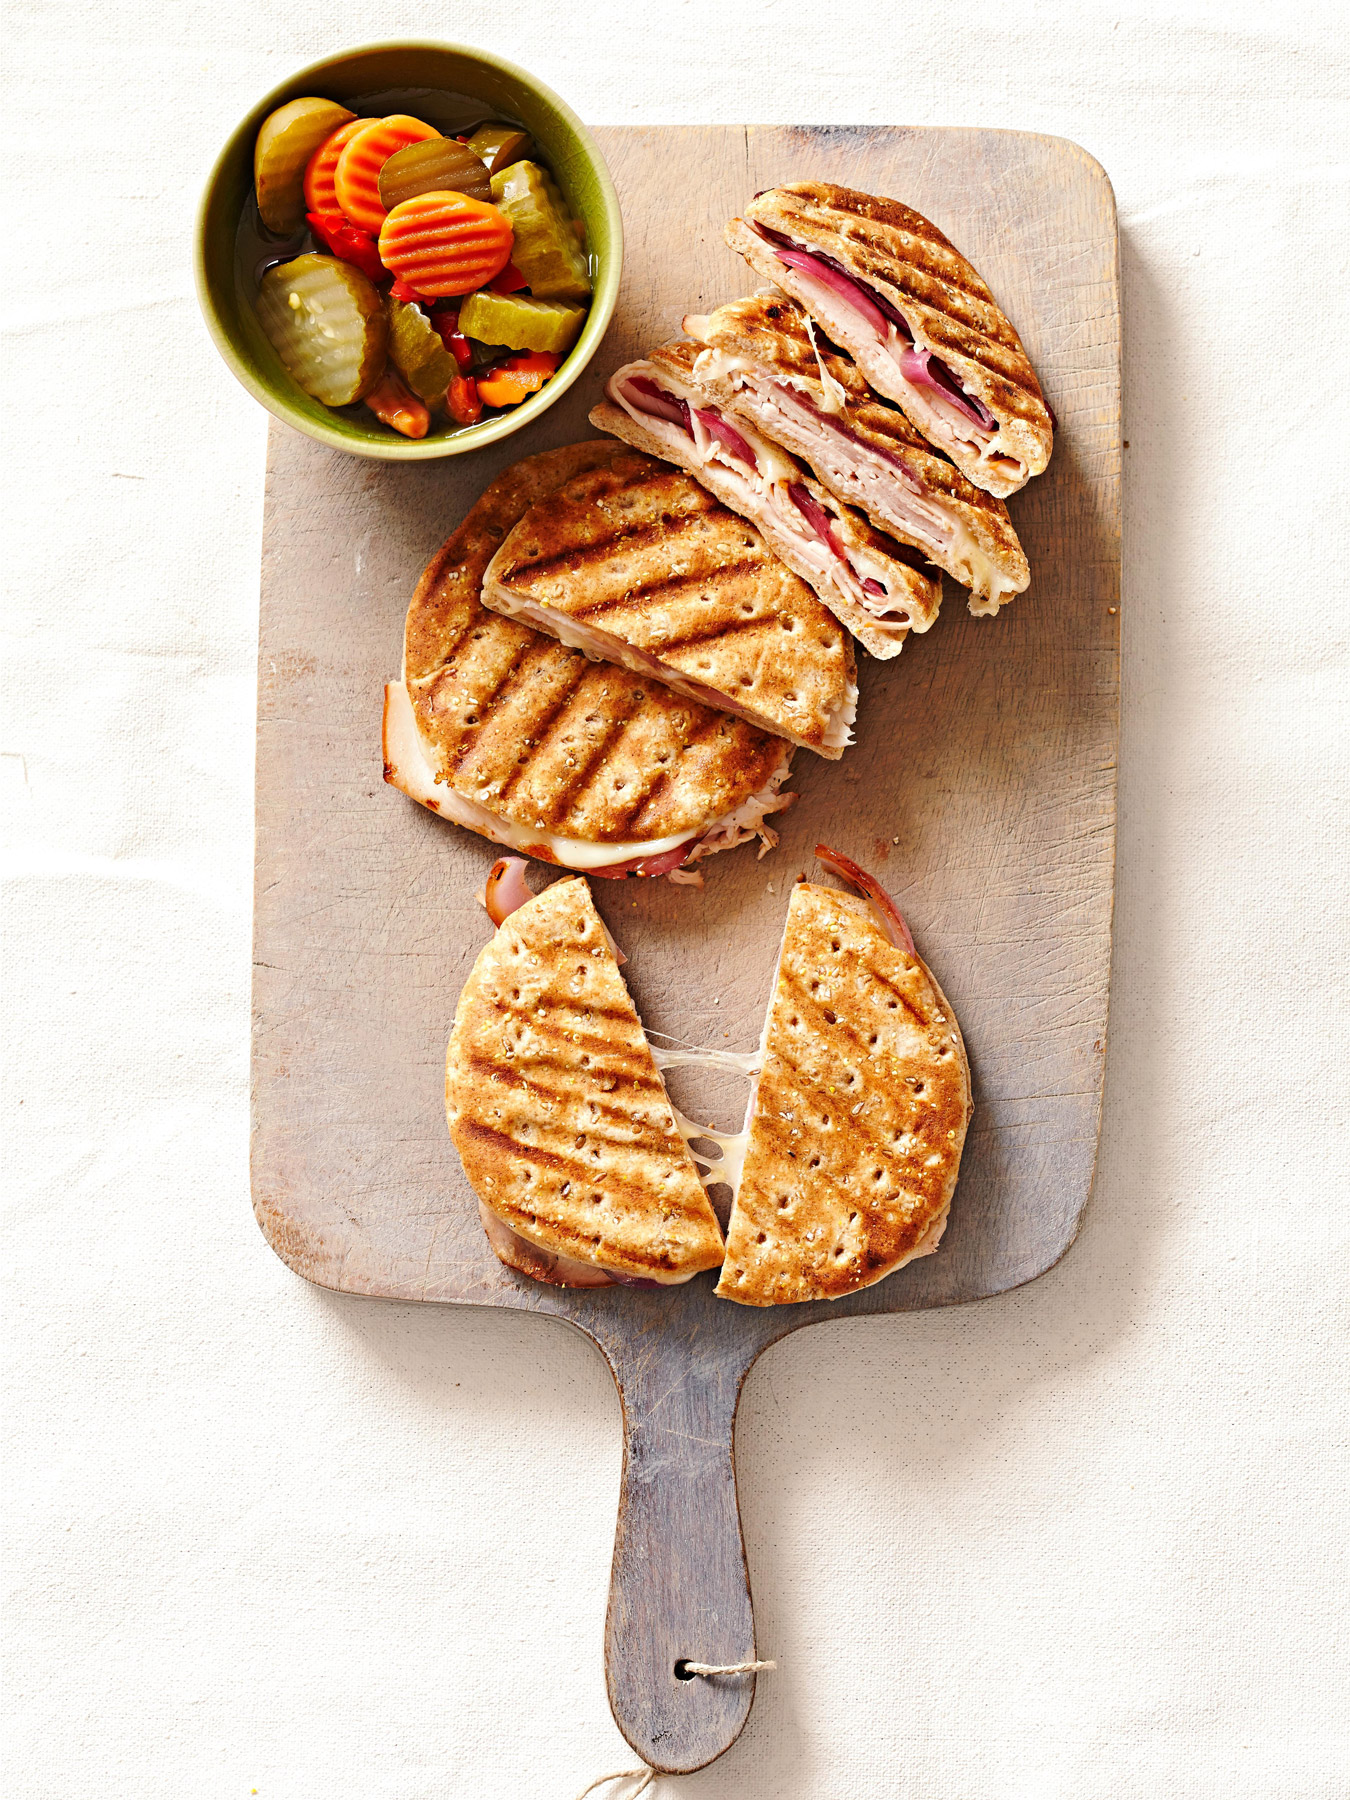 smoked turkey and grilled onion panini on cutting board